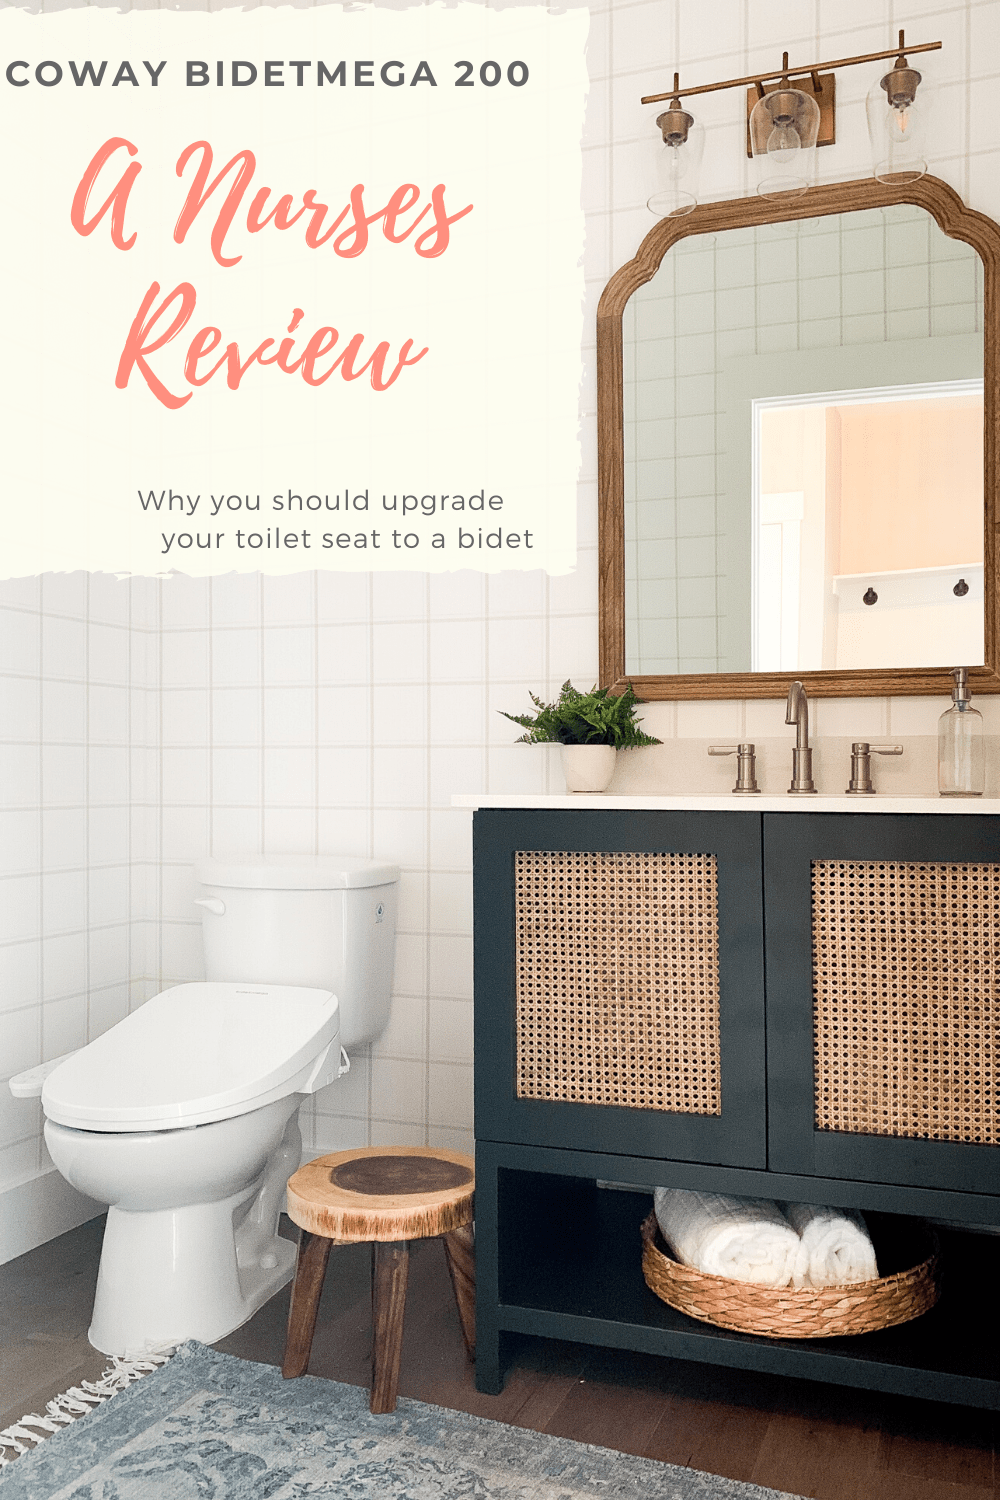 Bidet Toilet Seat A Nurse's Review Honey Built Home in